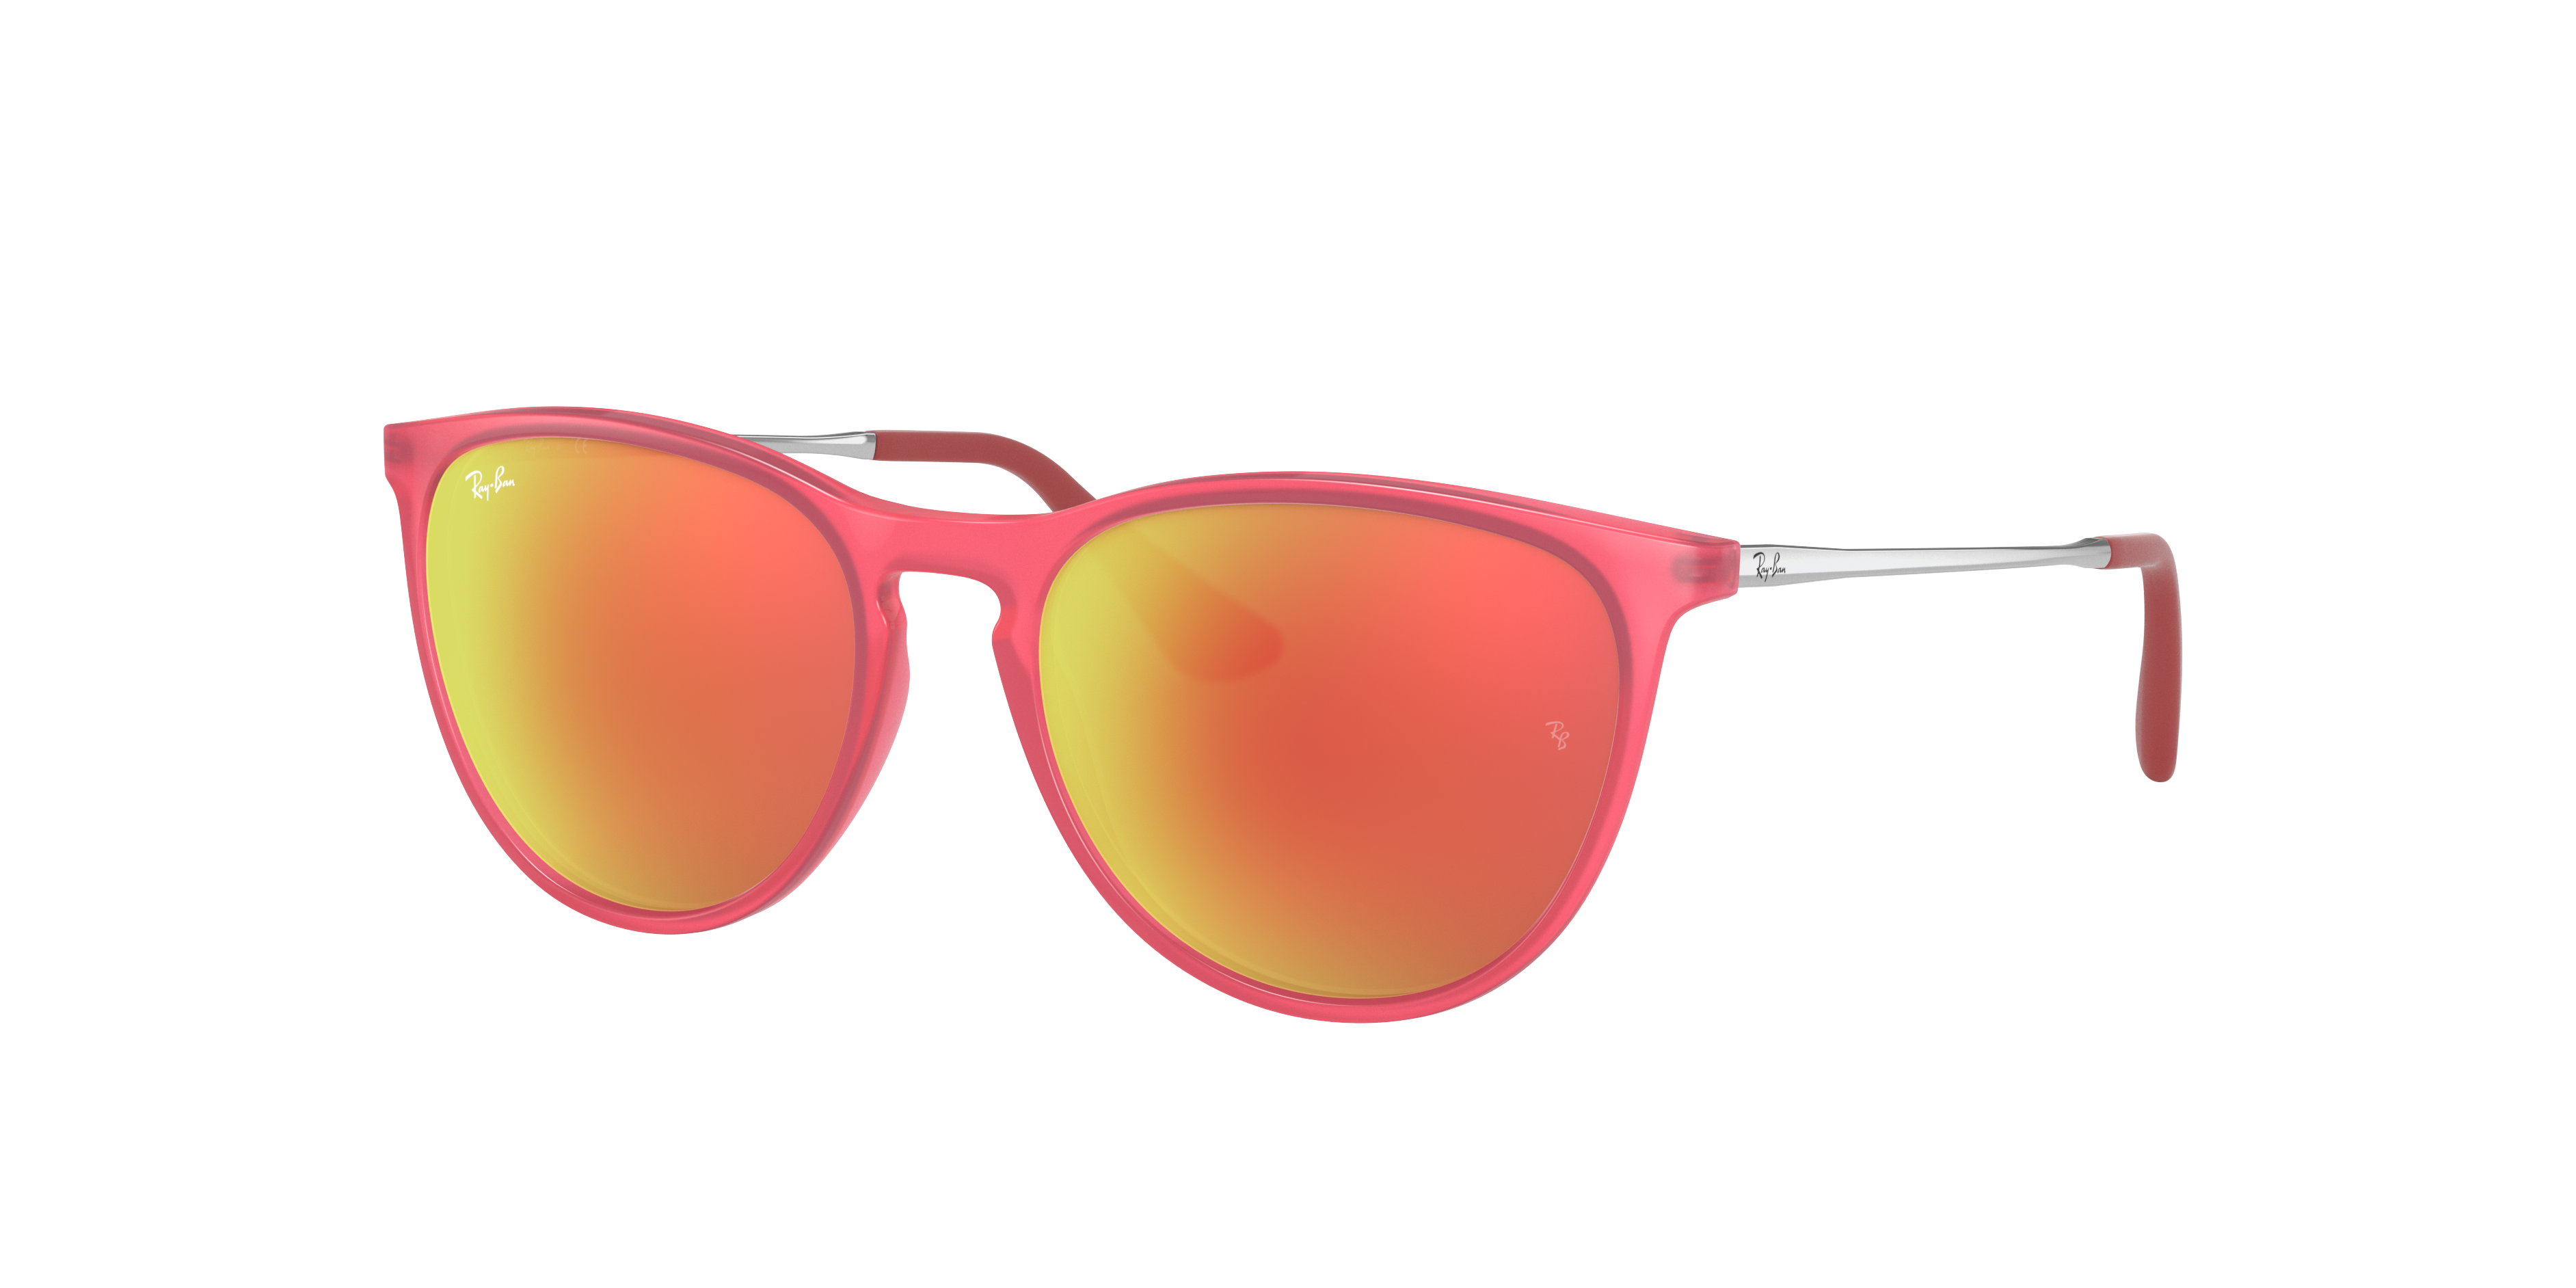 Ray-Ban Izzy Silver, Red Lenses - RJ9060S